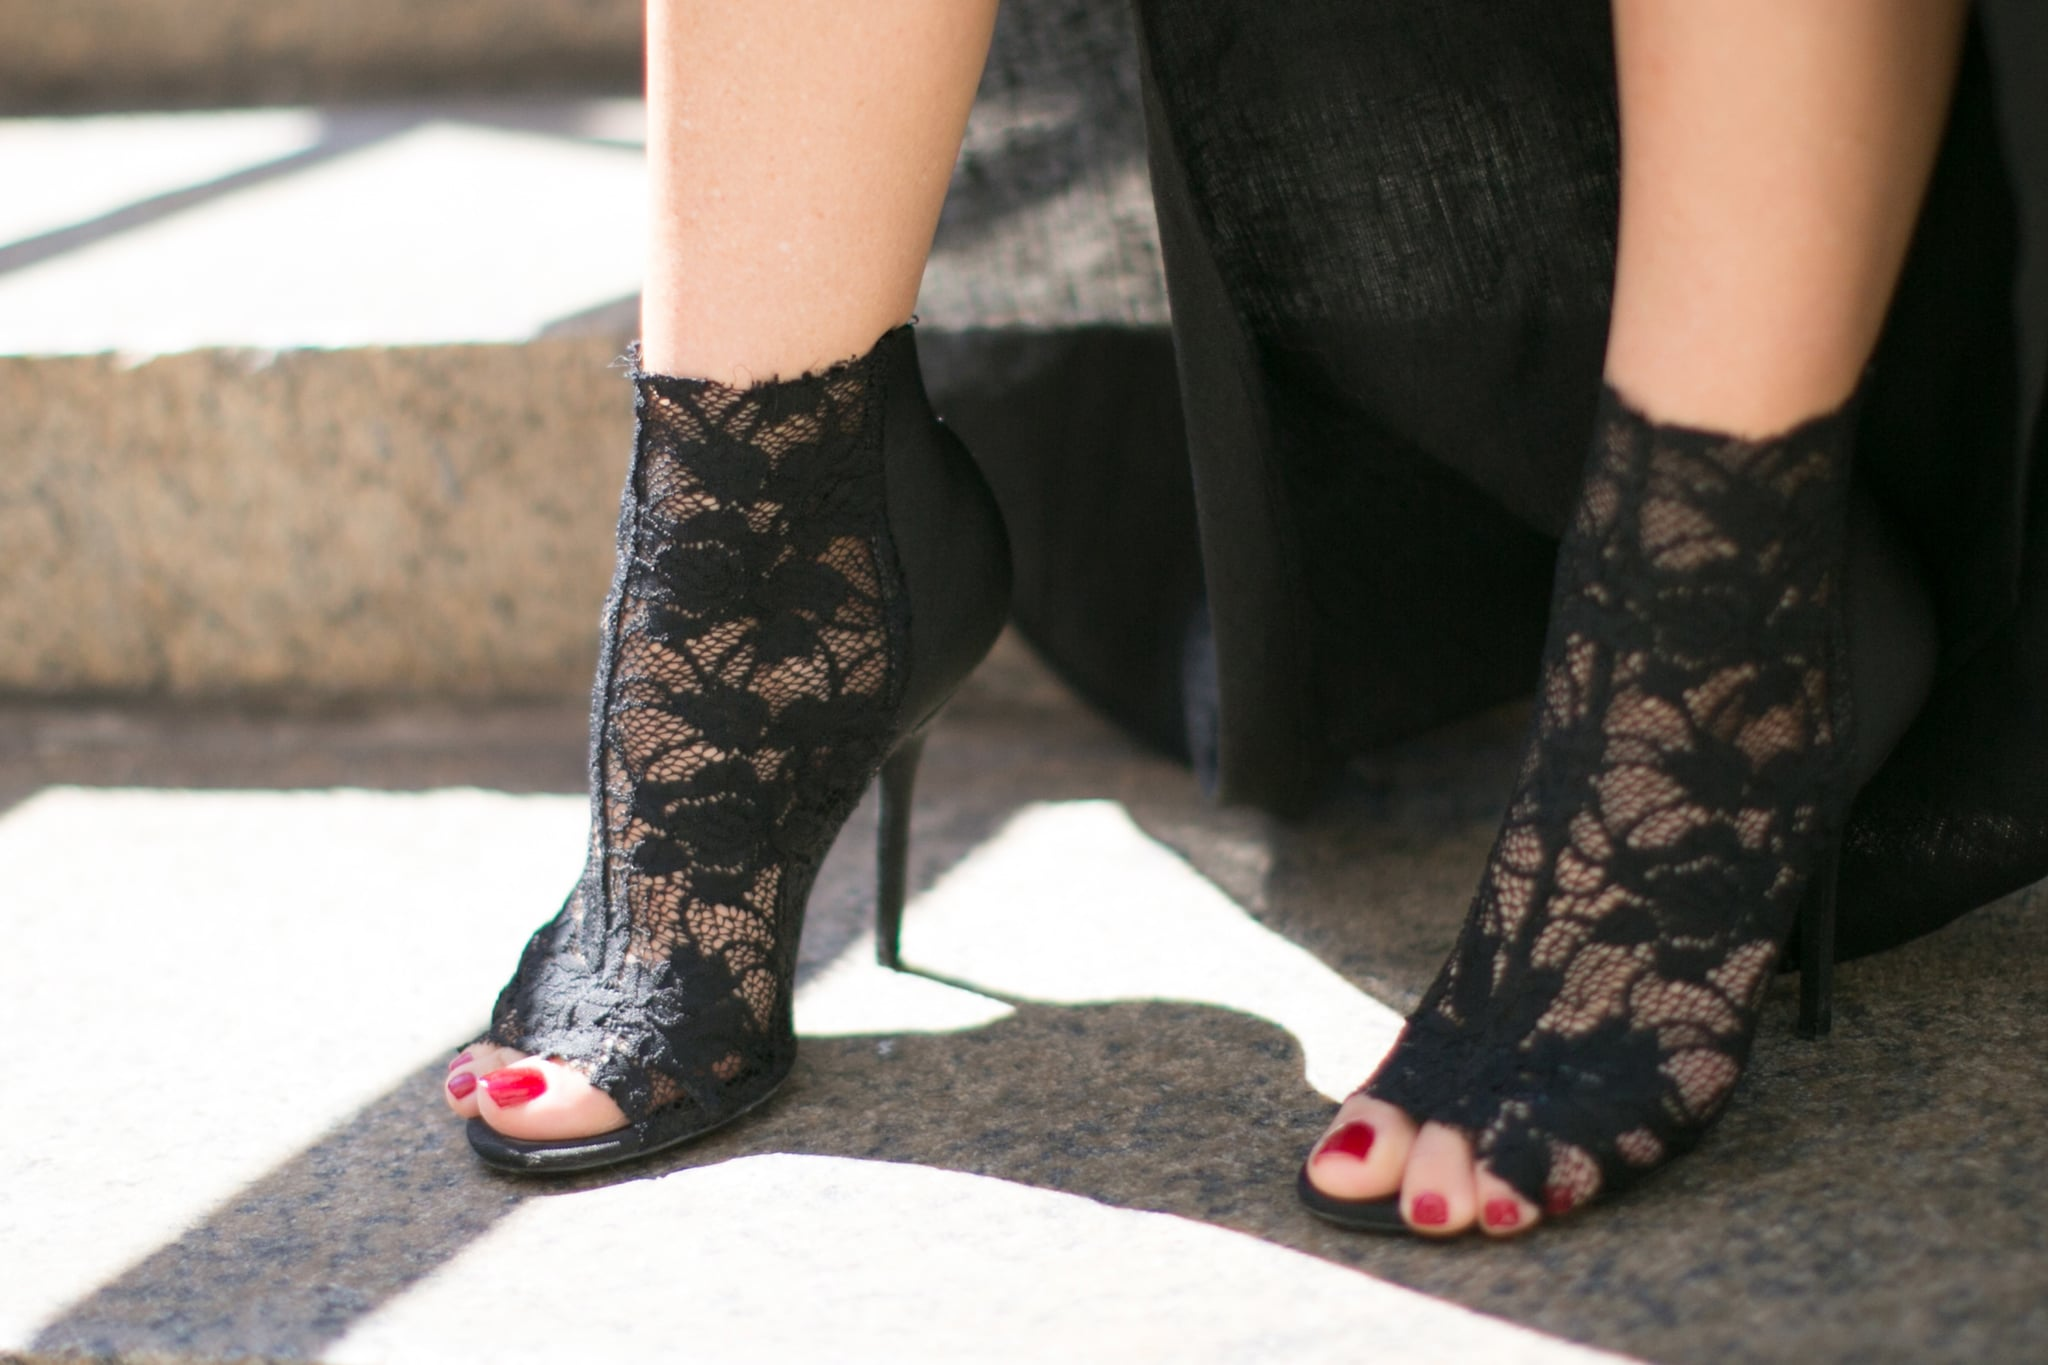 The sexiest kind of heels.